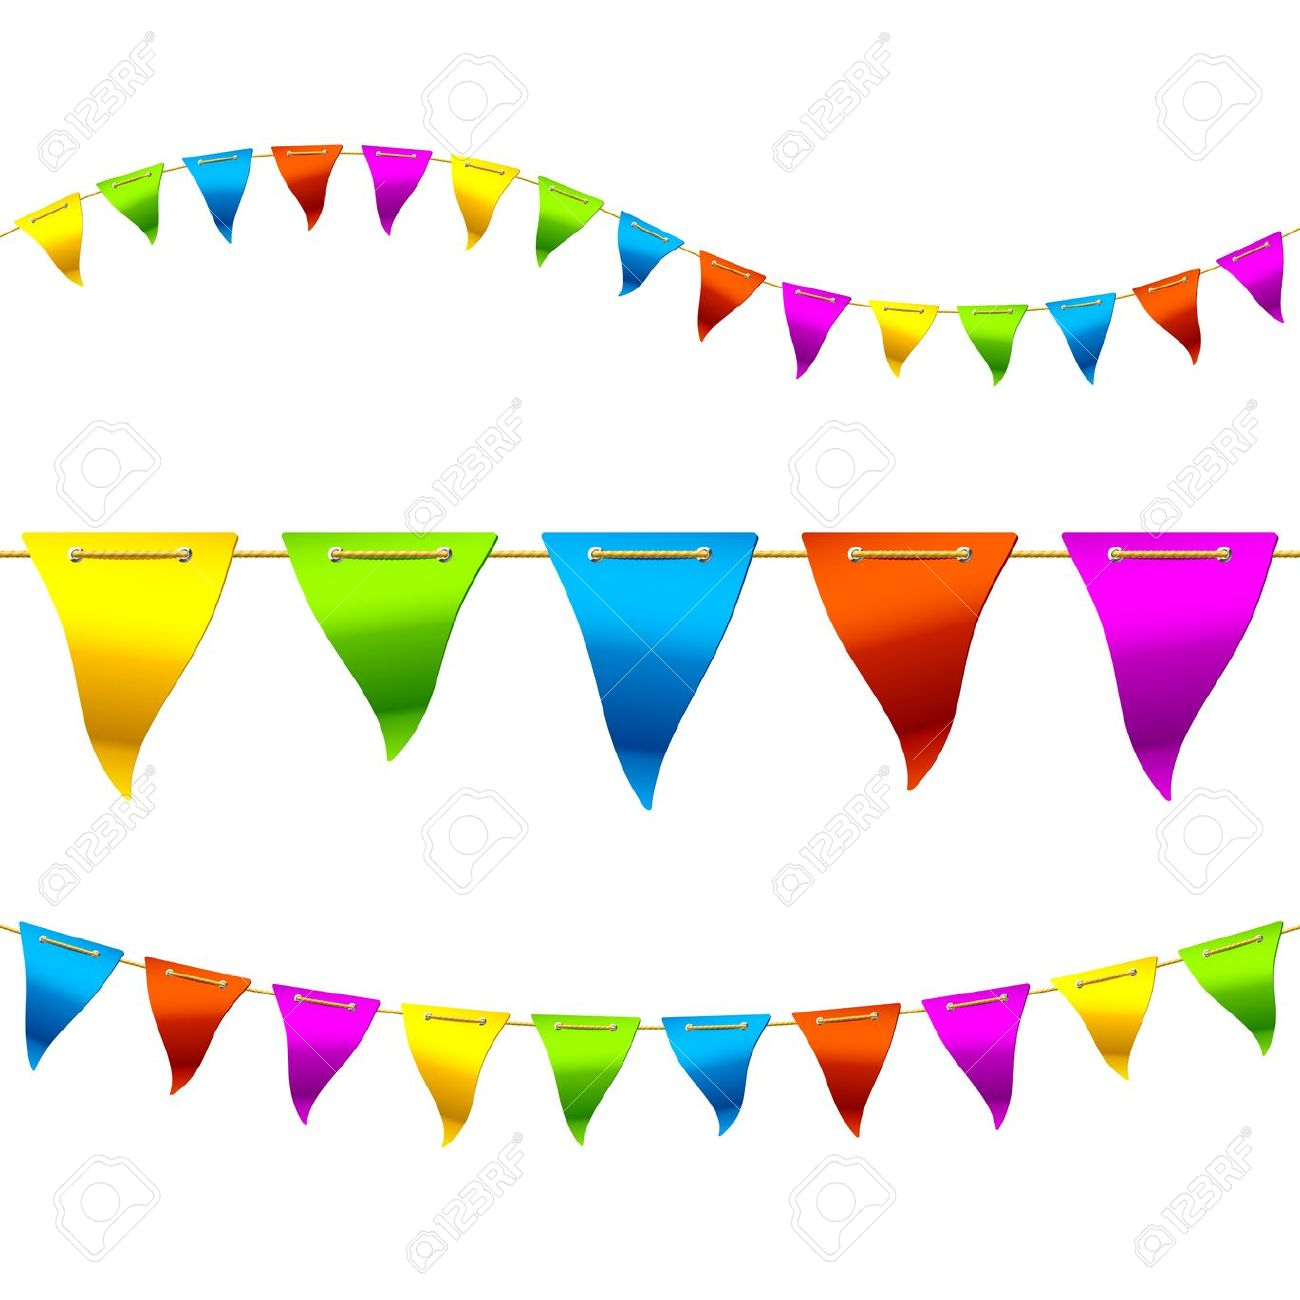 Bunting clipart #15, Download drawings